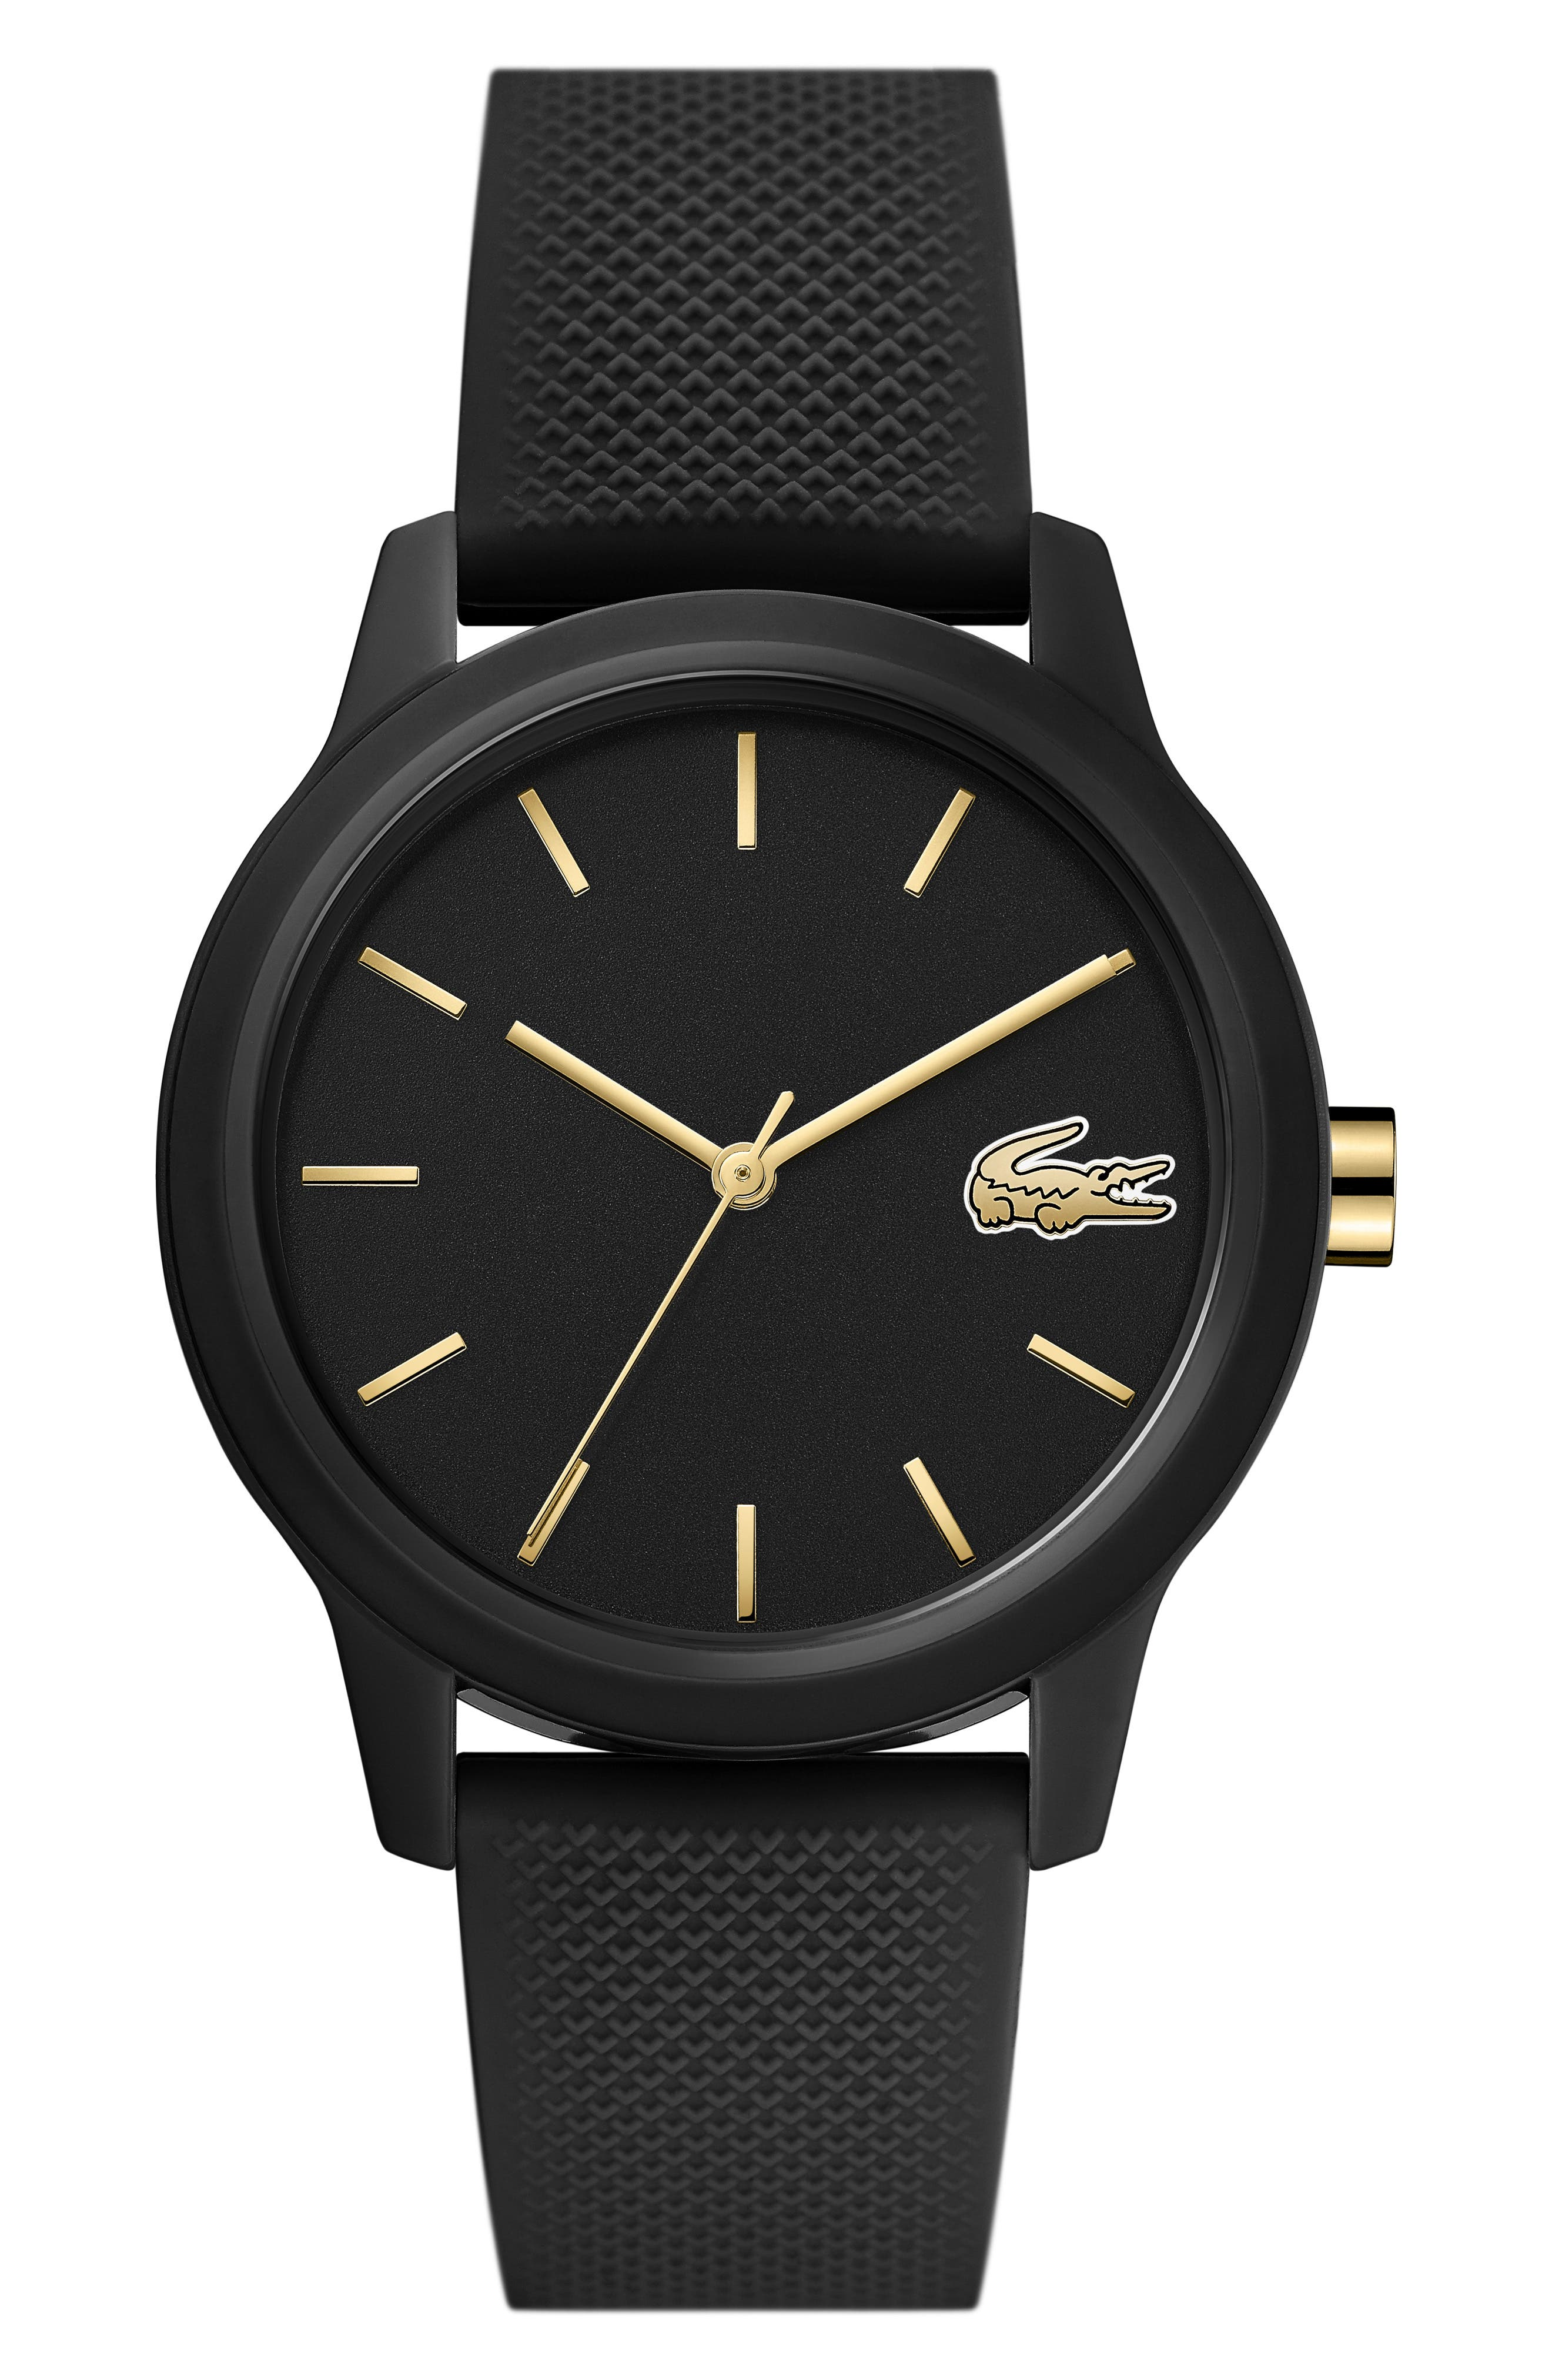 LACOSTE, 12.12 Silicone Strap Watch, 36mm, Main thumbnail 1, color, BLACK